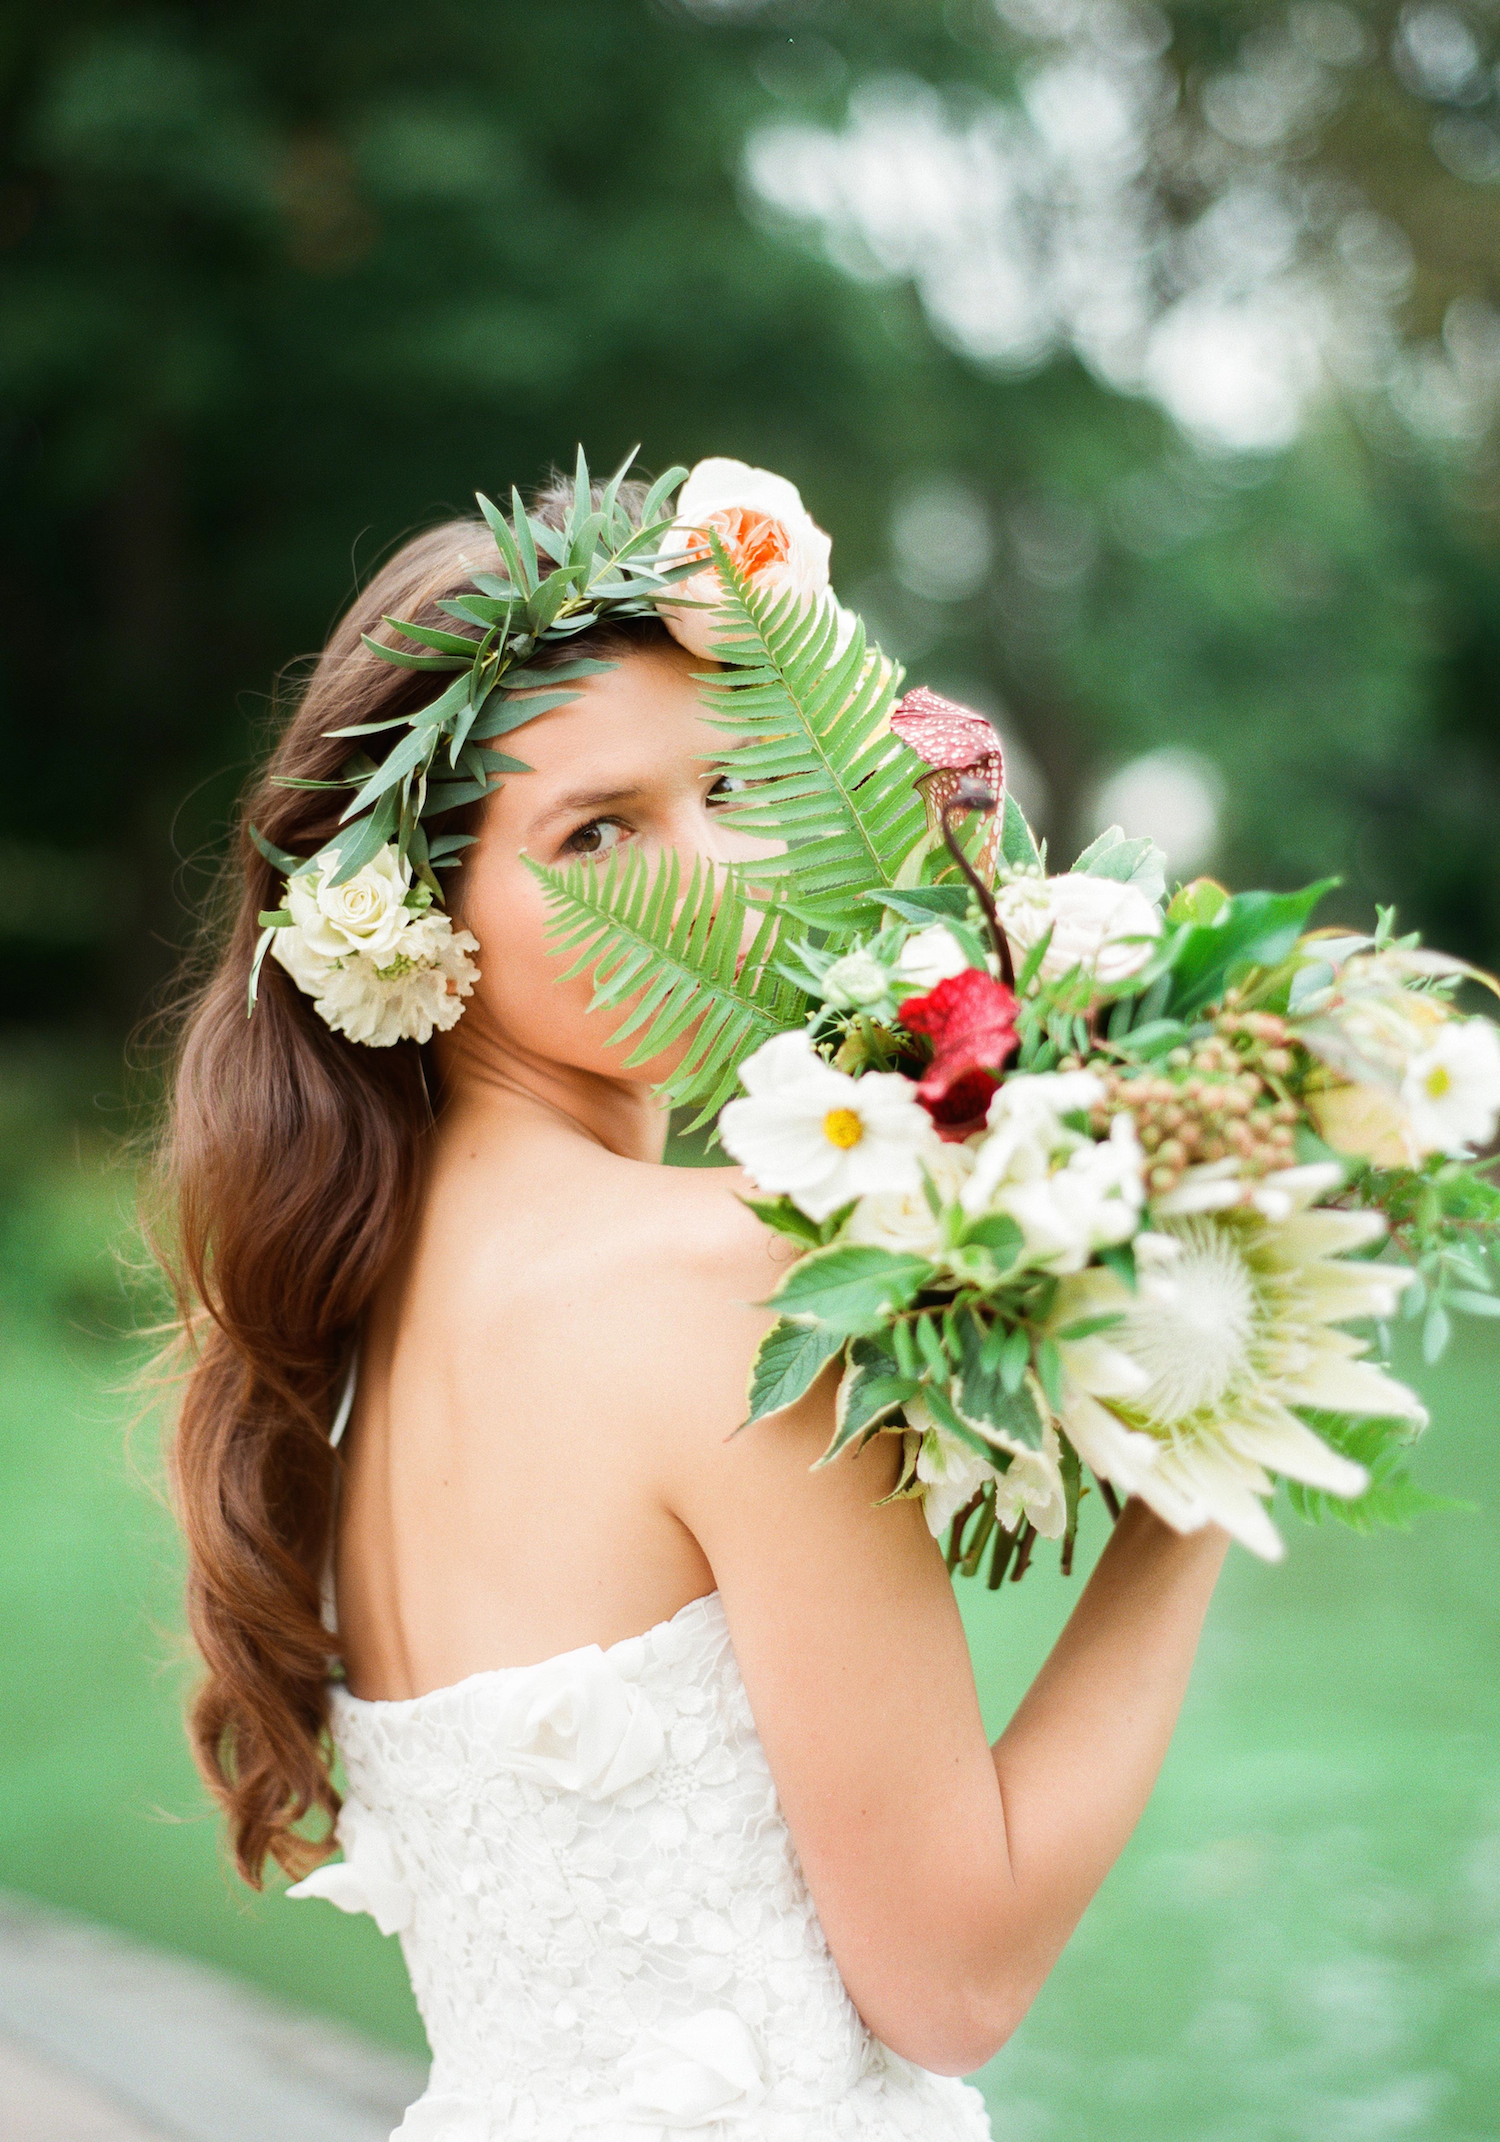 The Flower Bride- NYC Shoot- Lindsay Madden Photography-33 Full Aperture Floral copy.jpg